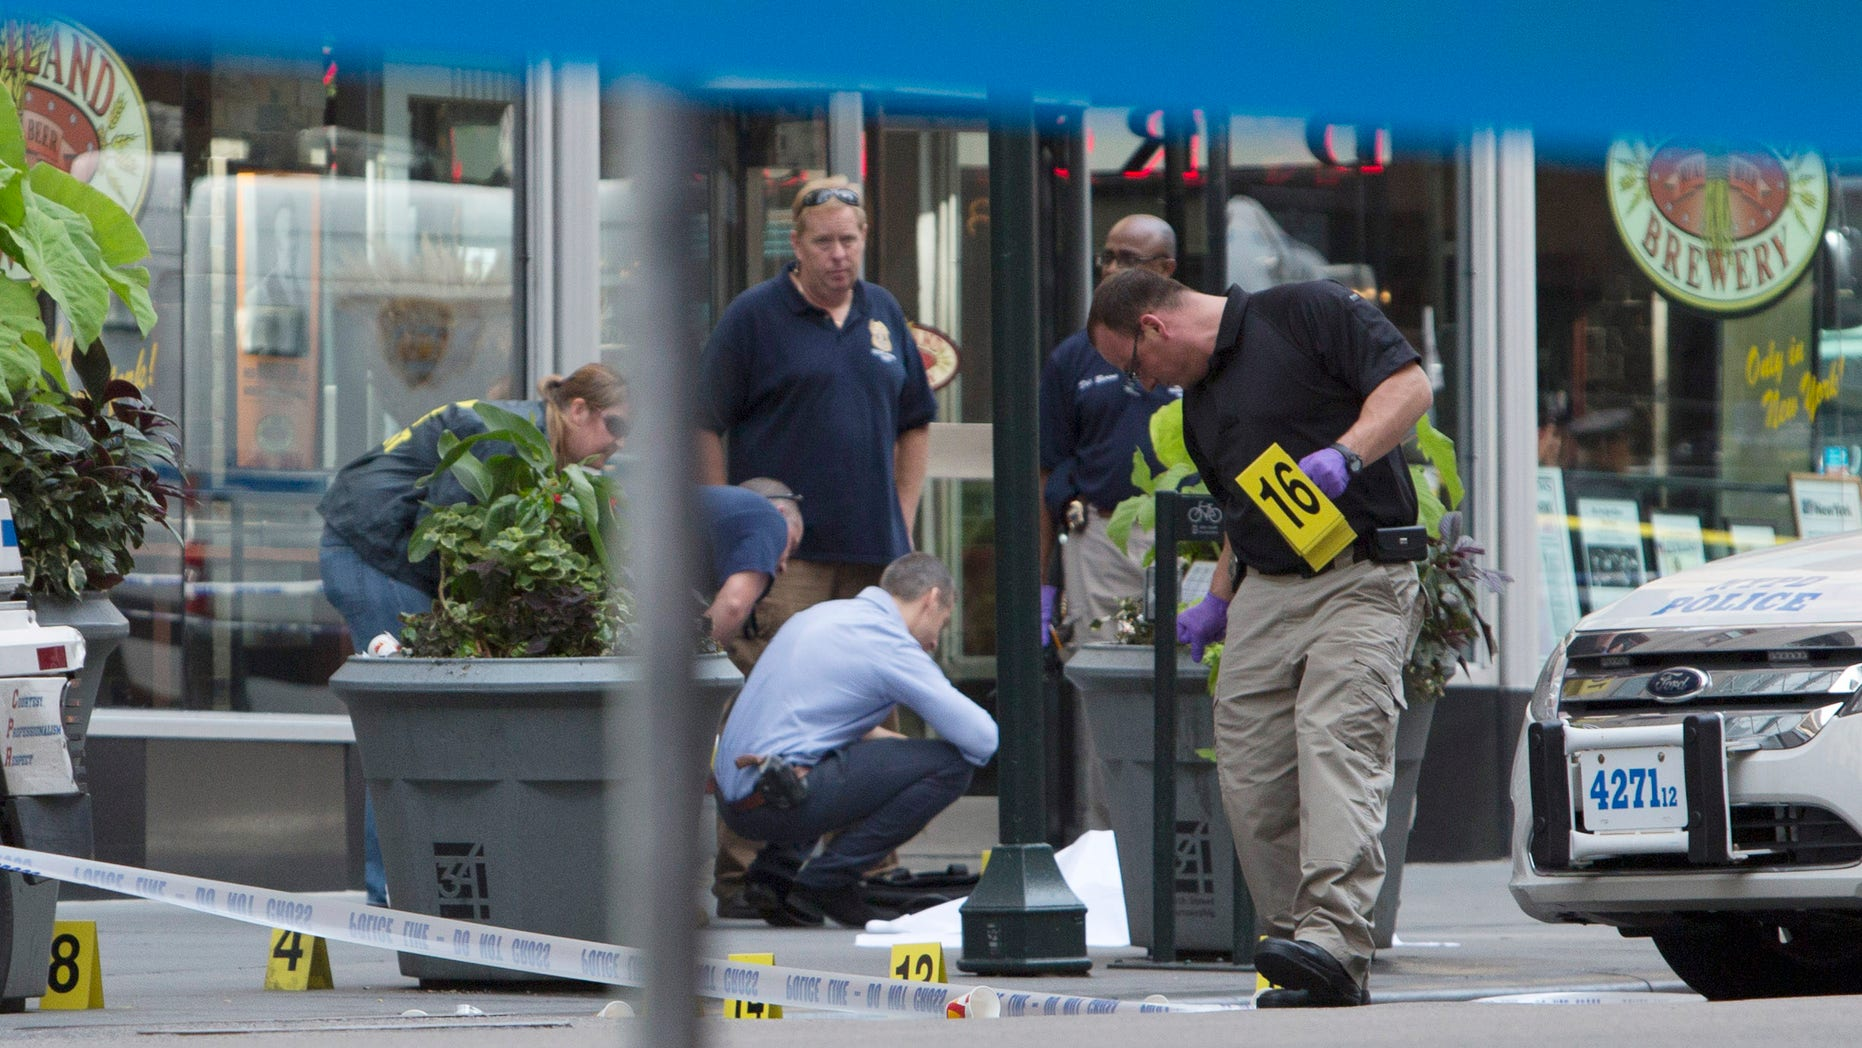 New York Police mark bullet casings beside the body of 58-year-old Jeffrey Johnson near the Empire State Building August 24, 2012 in New York City.